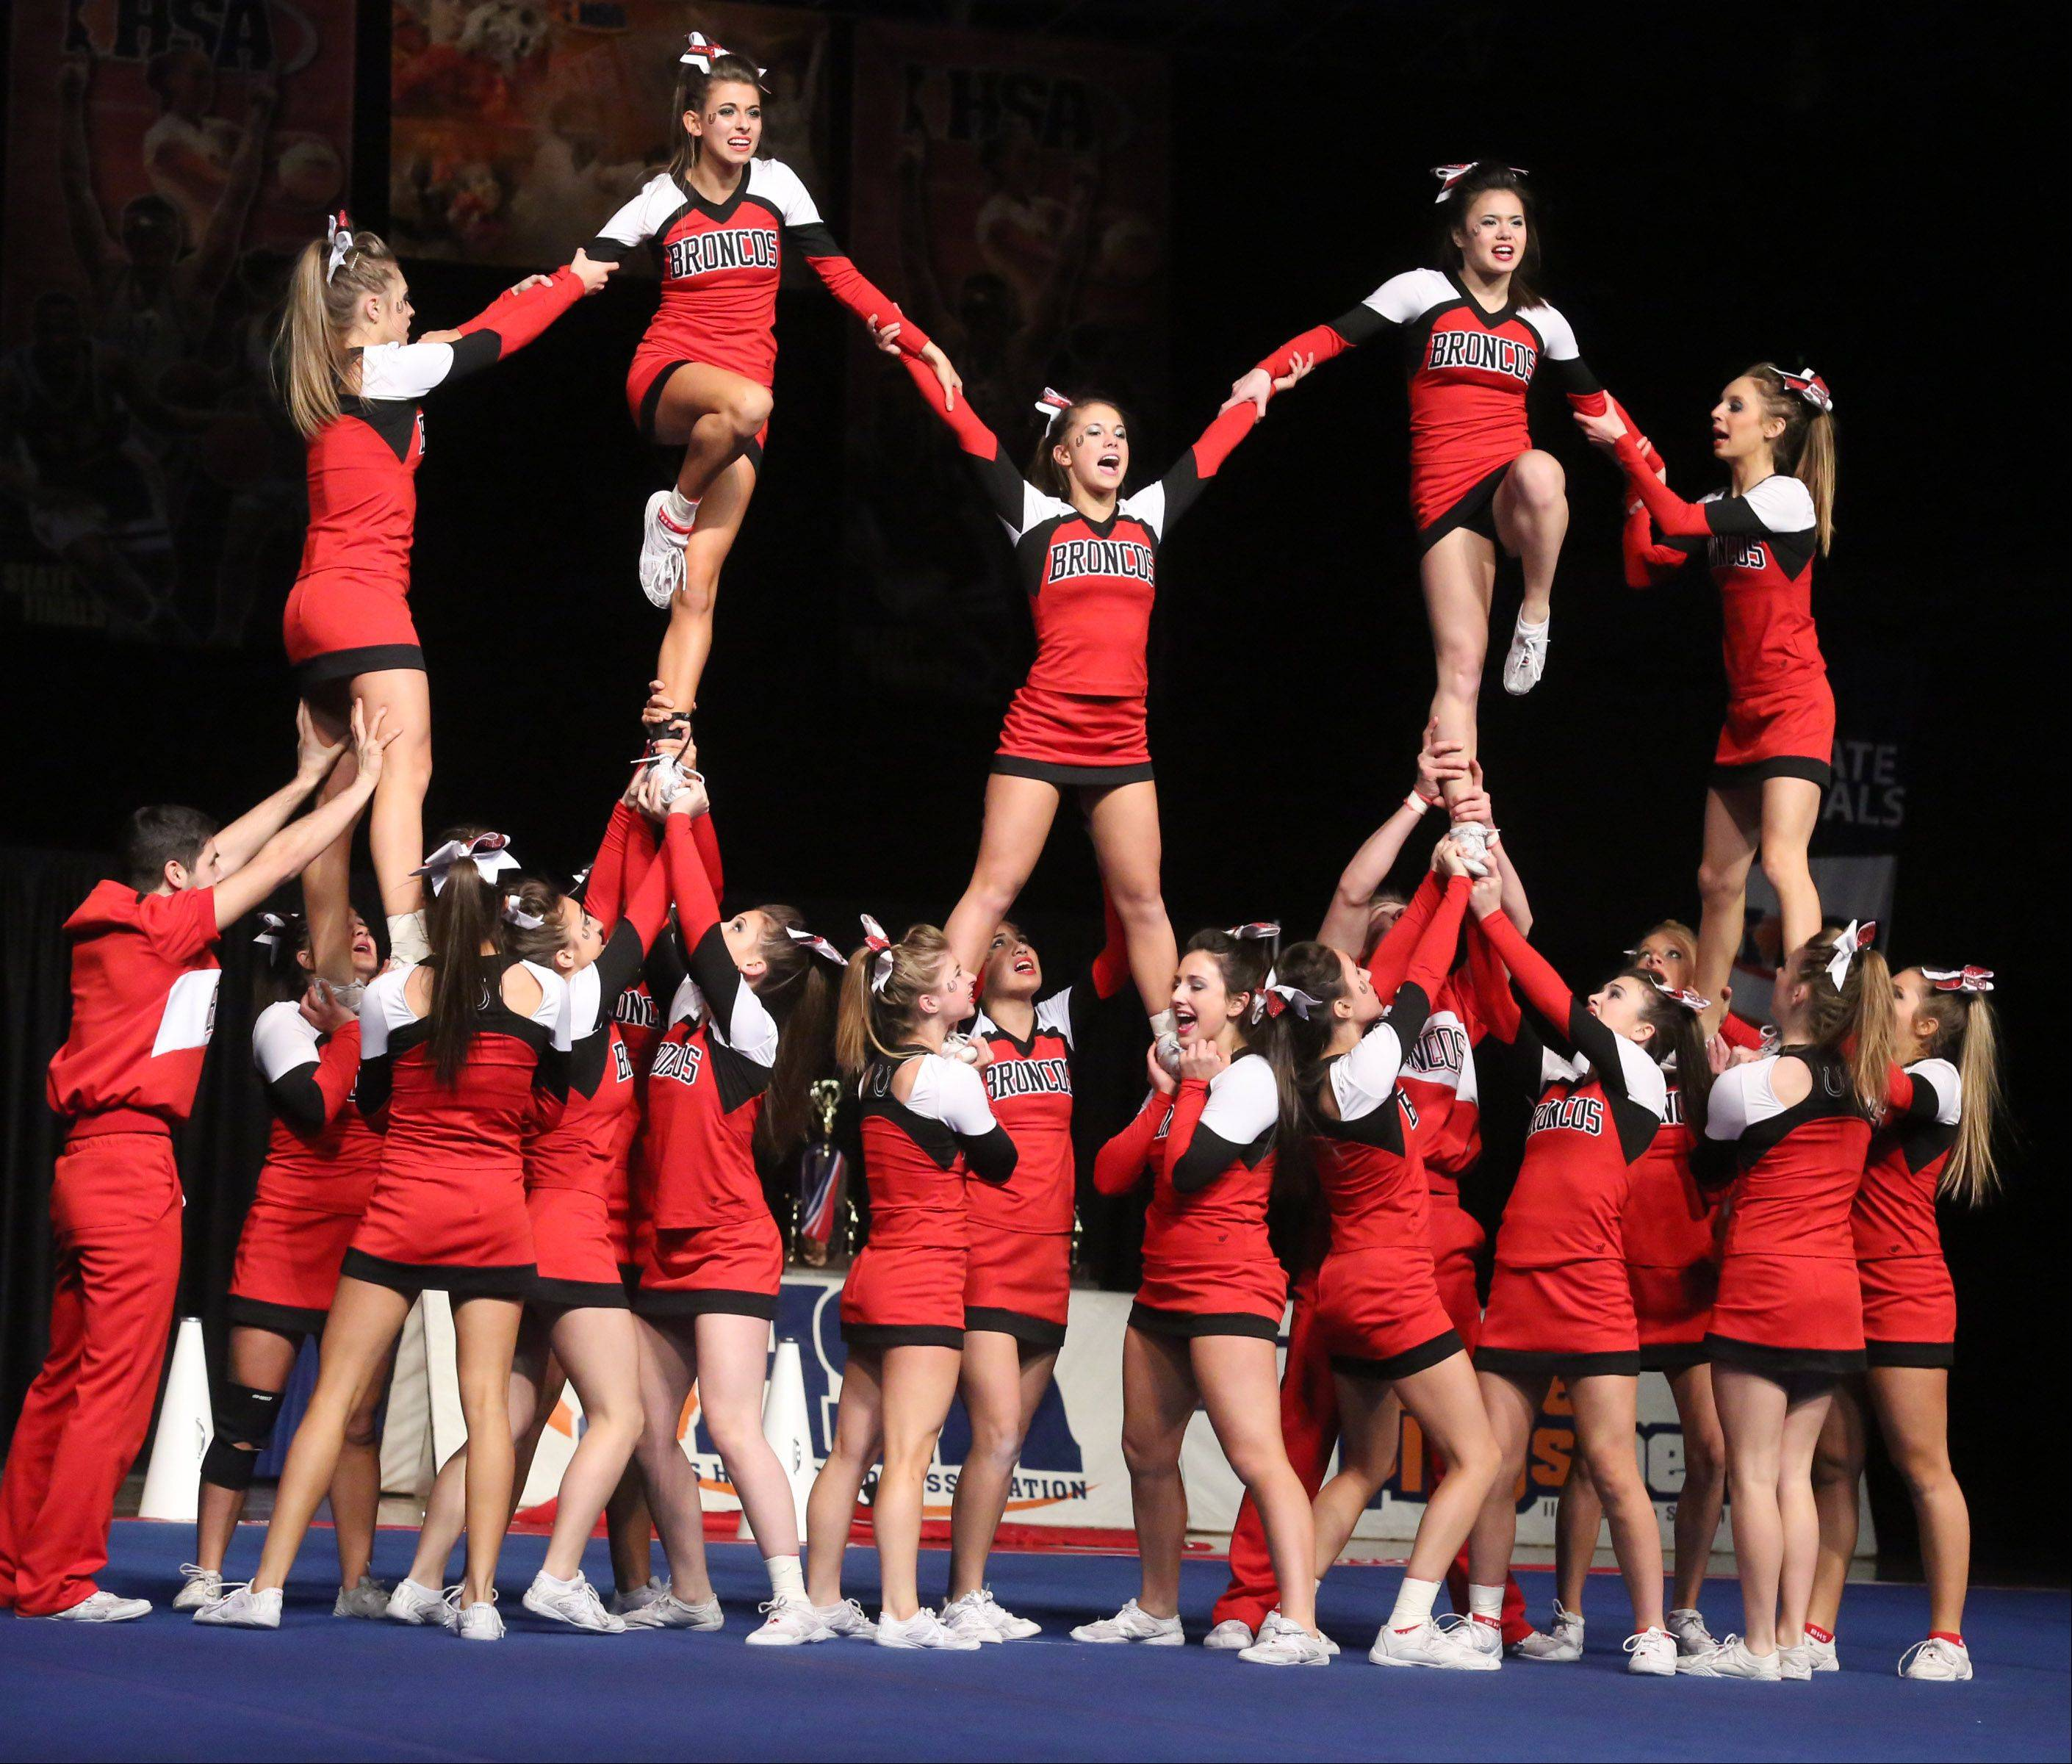 Barrington High School's cheer team performs in the coed team category.